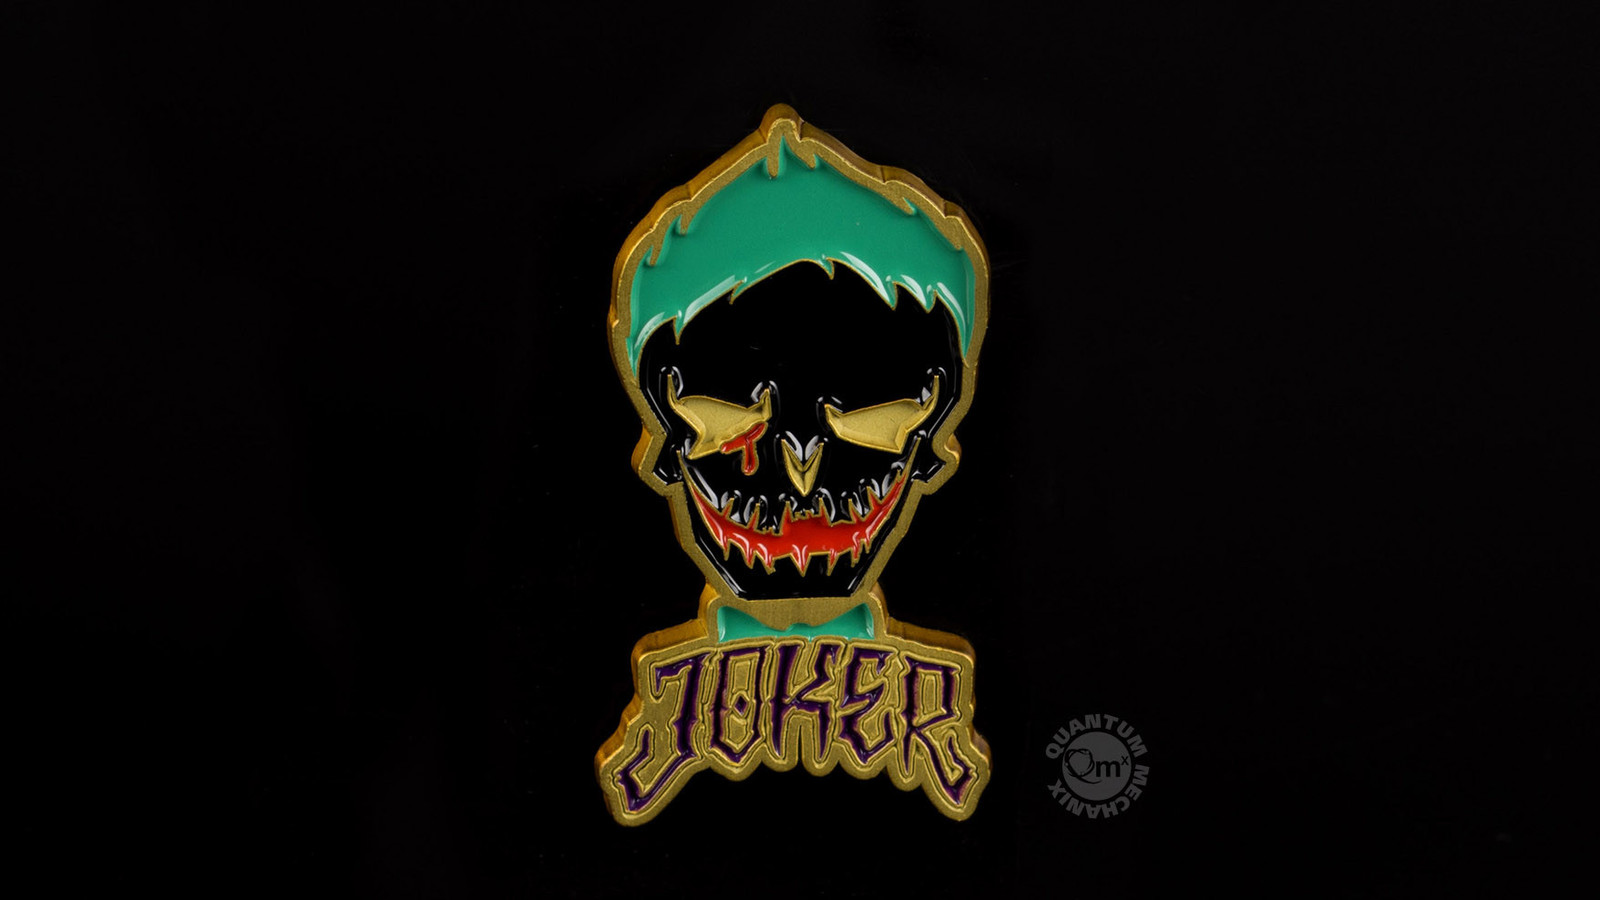 Suicide Squad: Joker Skull - Lapel Pin SDCC 2016 Excl image